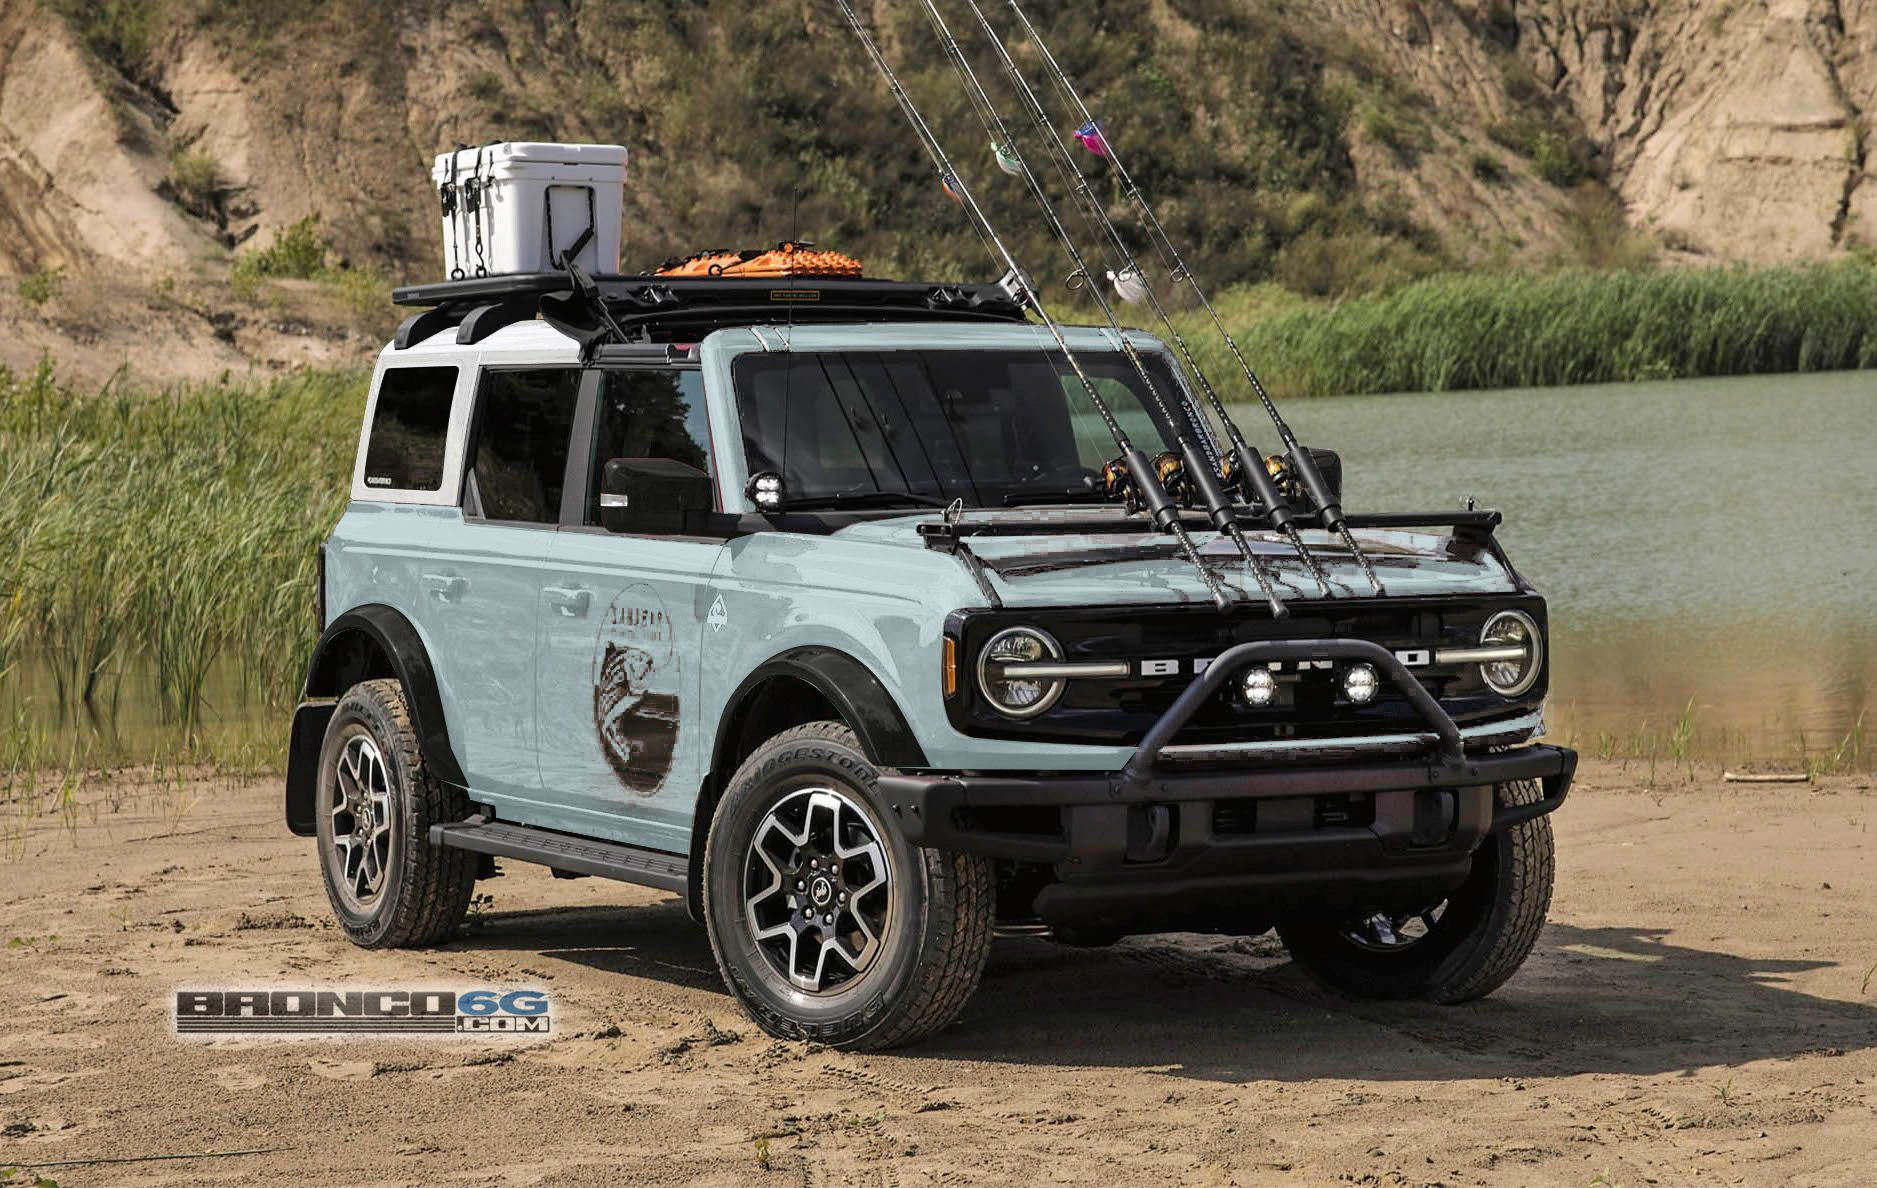 Pin By Robert Ah On Ford Bronco In 2020 Ford Bronco Bronco Broncos Colors